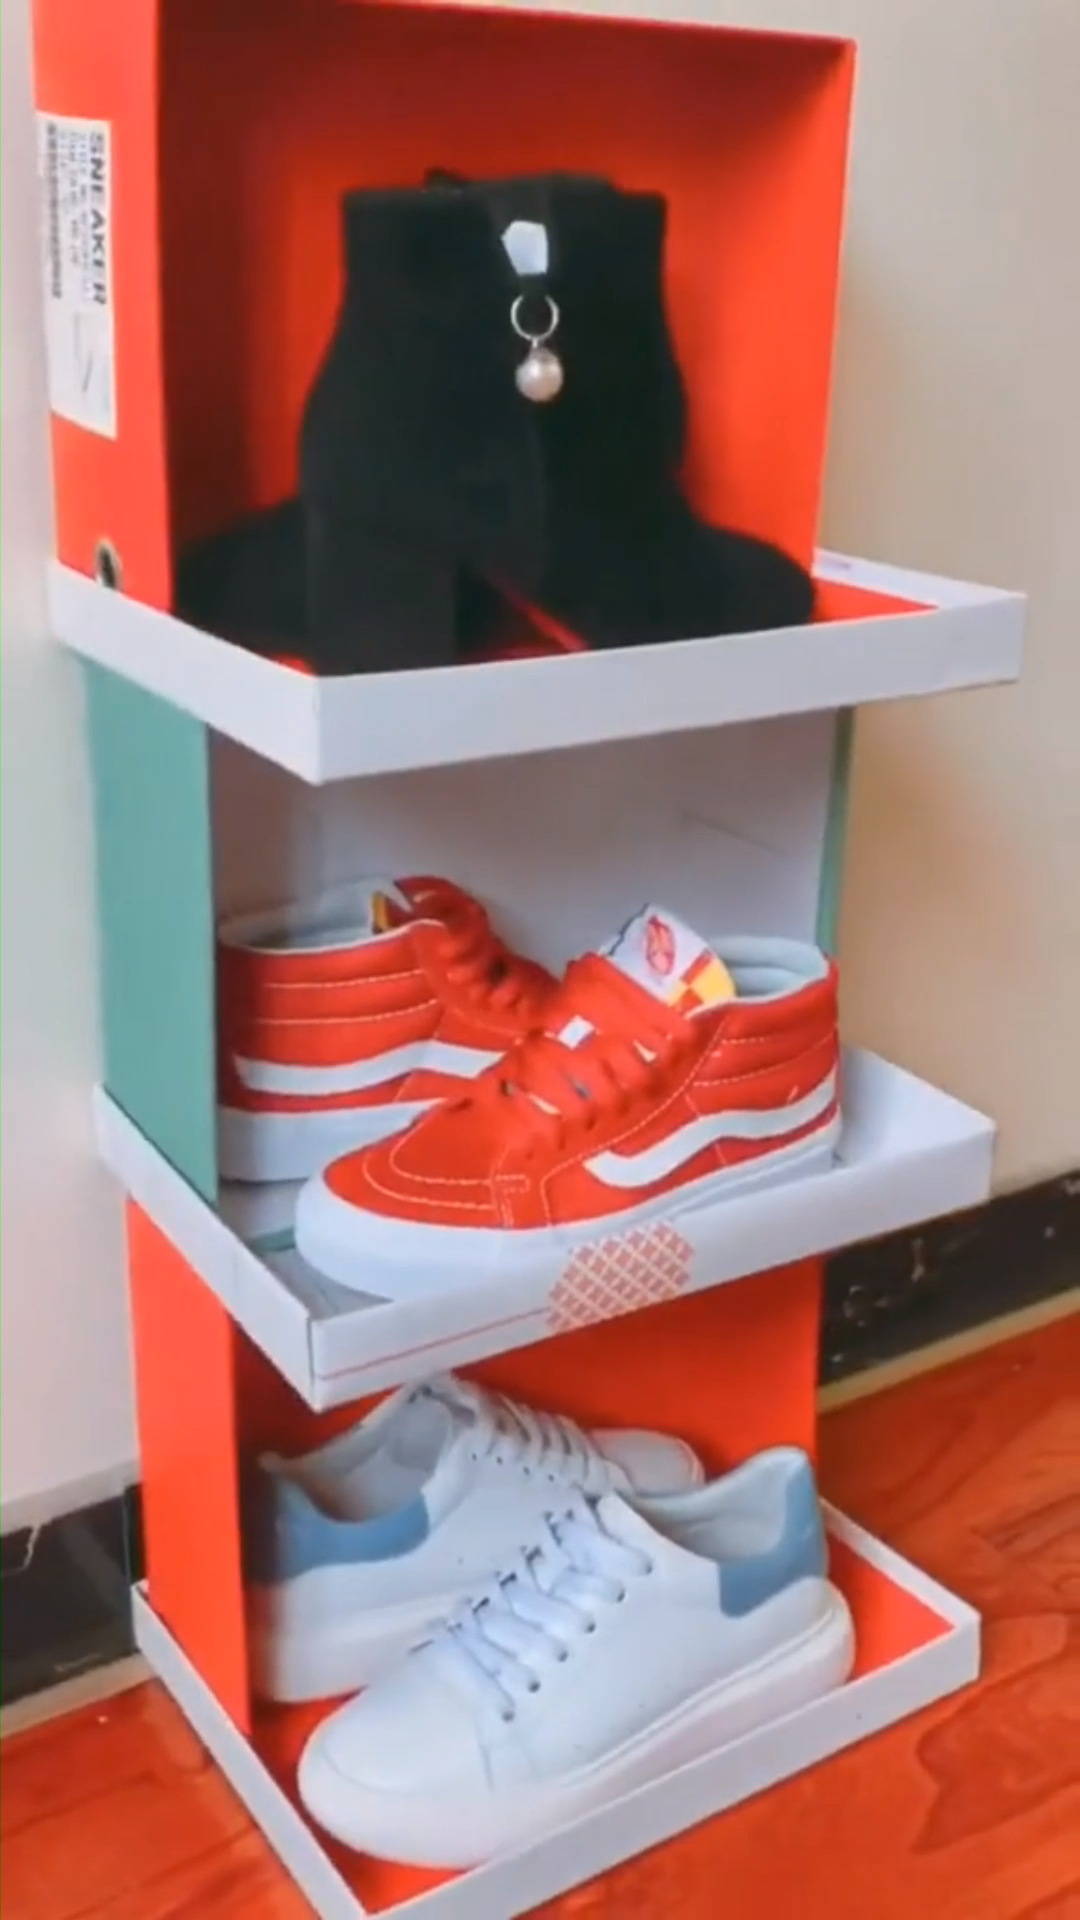 DIY Shoe Rack by Shoe Boxes - Efficient.newsquads.club